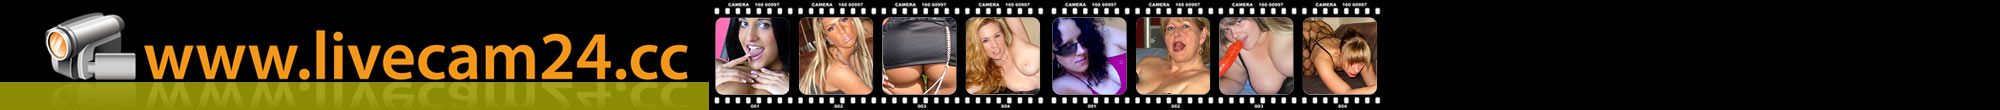 ExoticPenelope, 30 Jahre, BH: 70 D - sex strip -  - Video Web Cams Live Sex Chat von heissen Girls